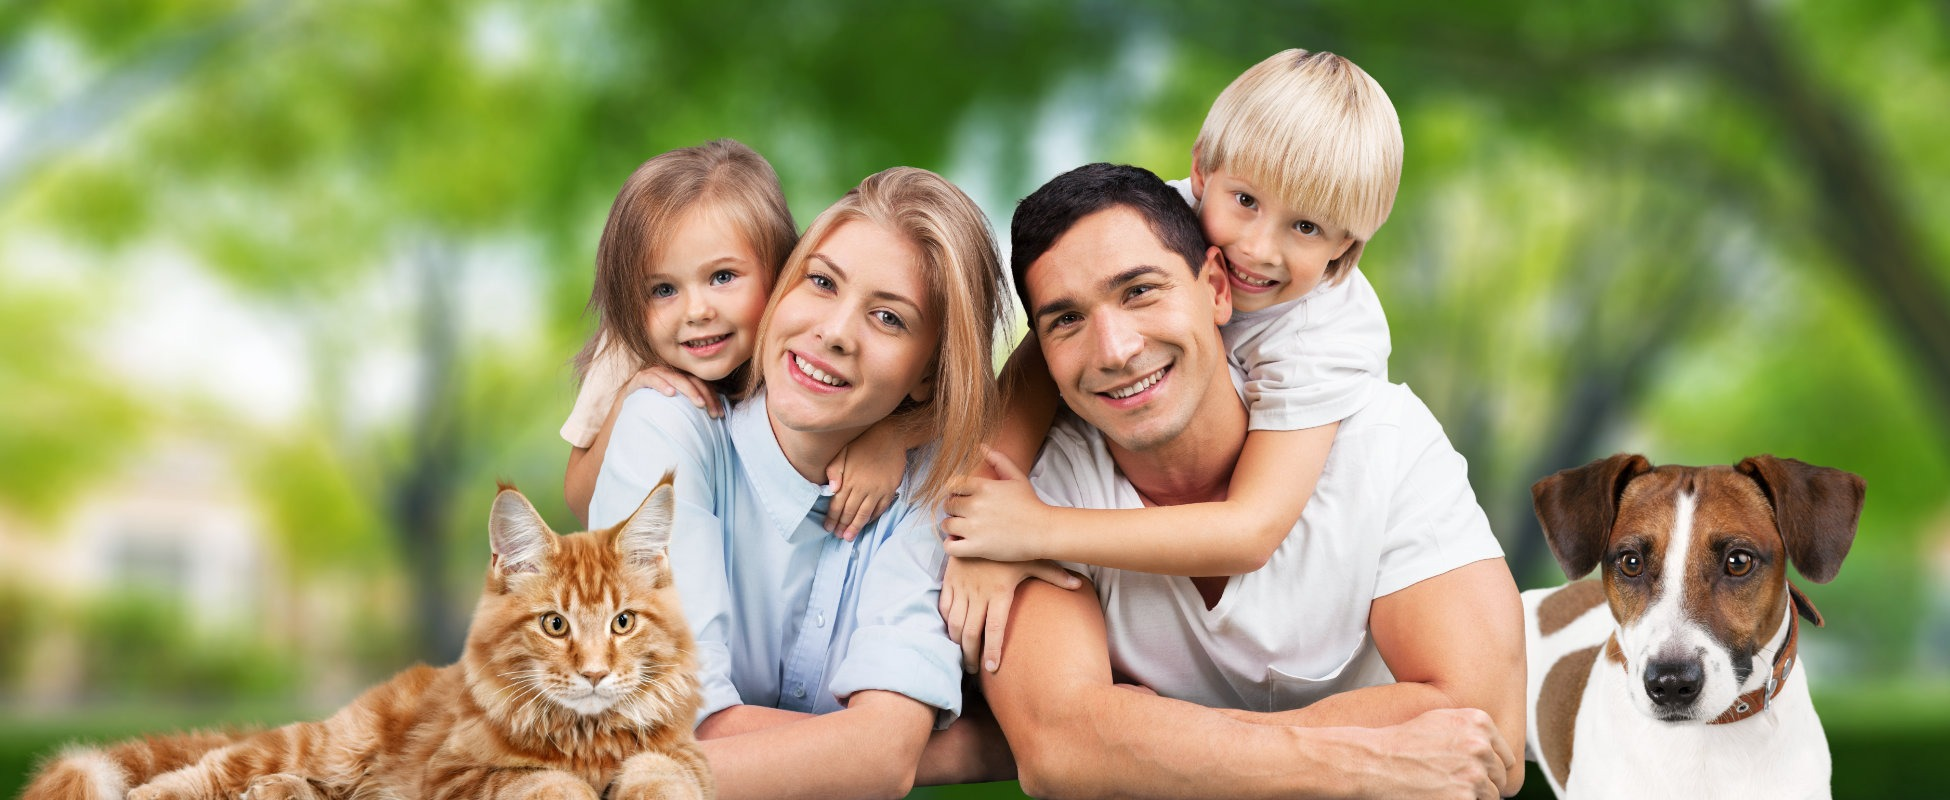 bionutrition family dog and cat